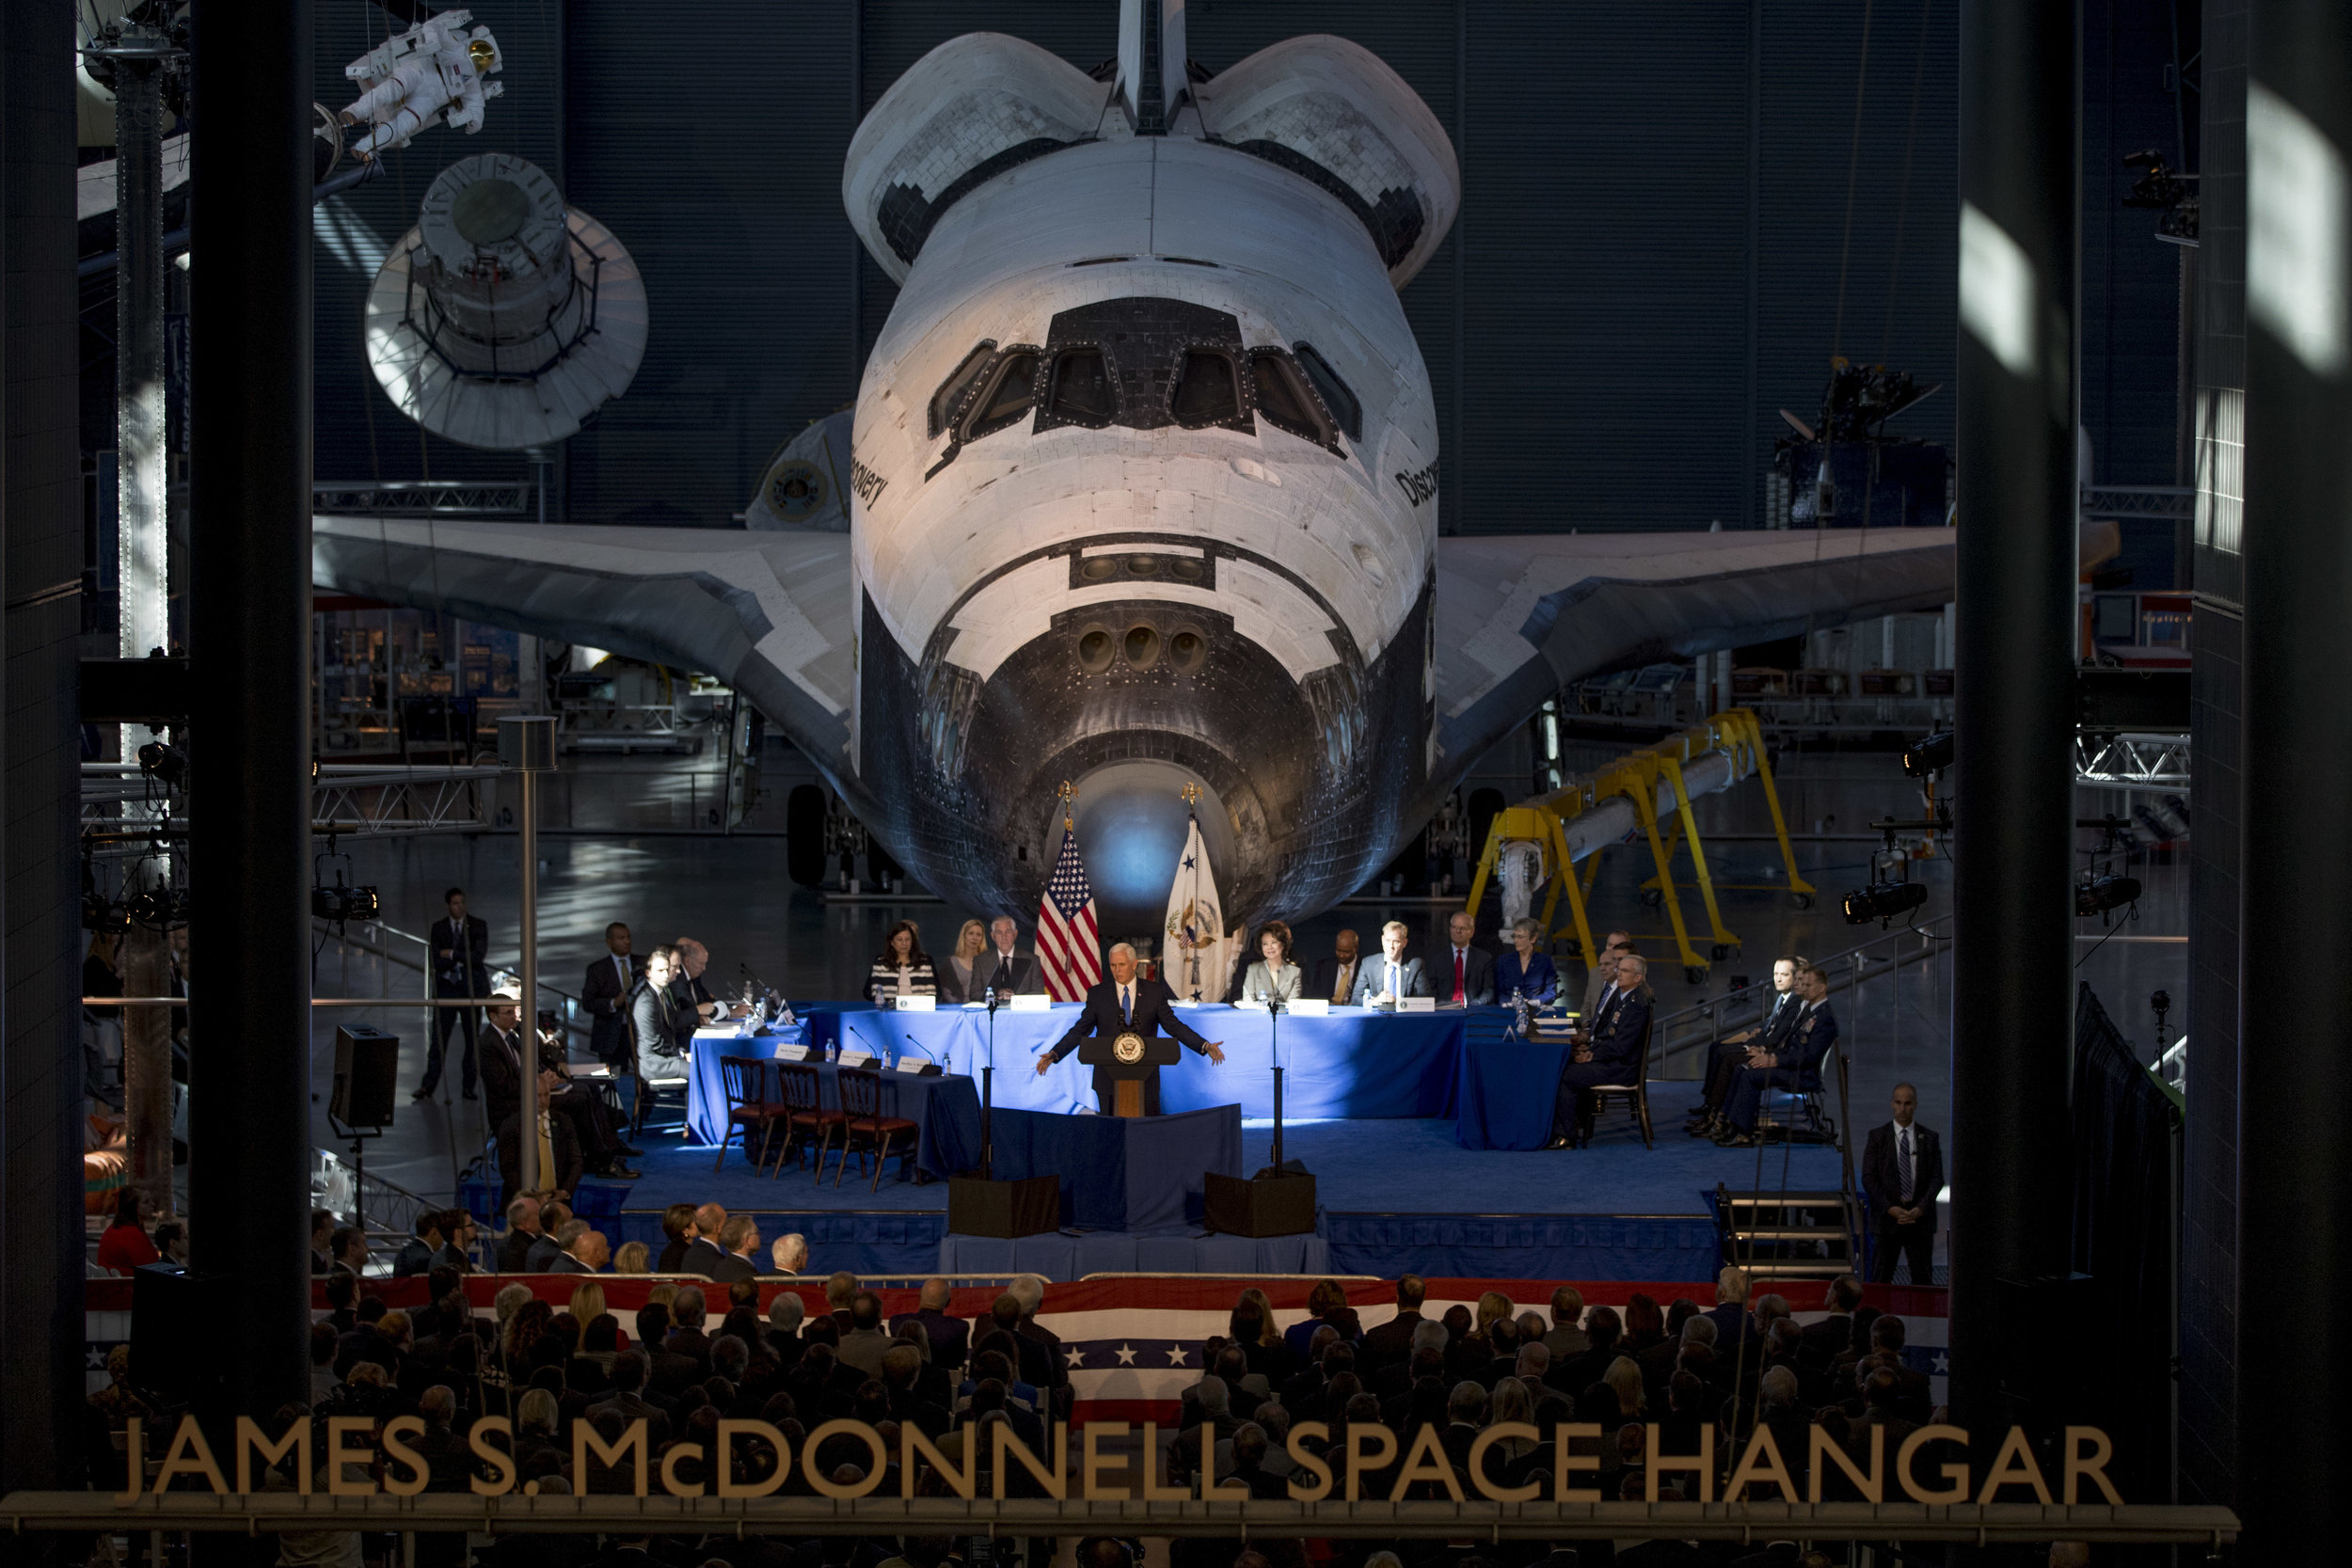 Vice President Mike Pence speaks in front of NASA's Space Shuttle Discovery at the National Space Council first meeting at the Steven F. Udvar-Hazy Center, Thursday, Oct. 5, 2017 in Chantilly, Va. (AP Photo/Andrew Harnik)